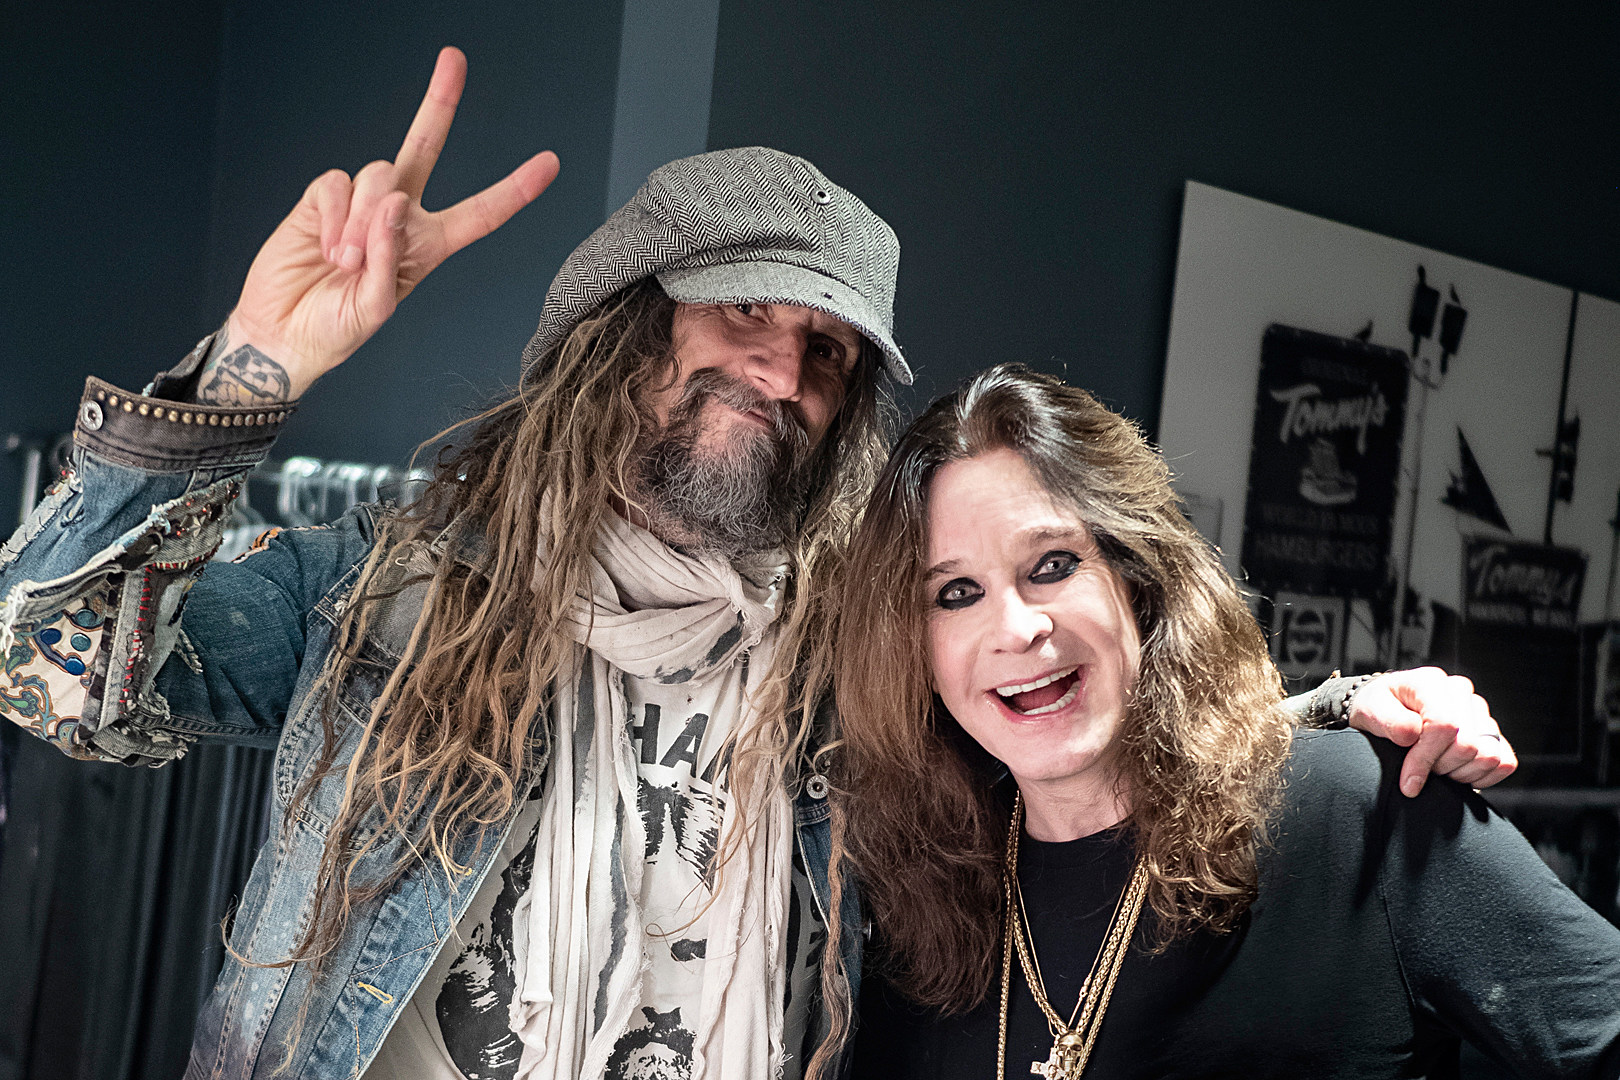 Ozzy Osbourne, Rob Zombie + More Ring in New Year at Ozzfest 2018